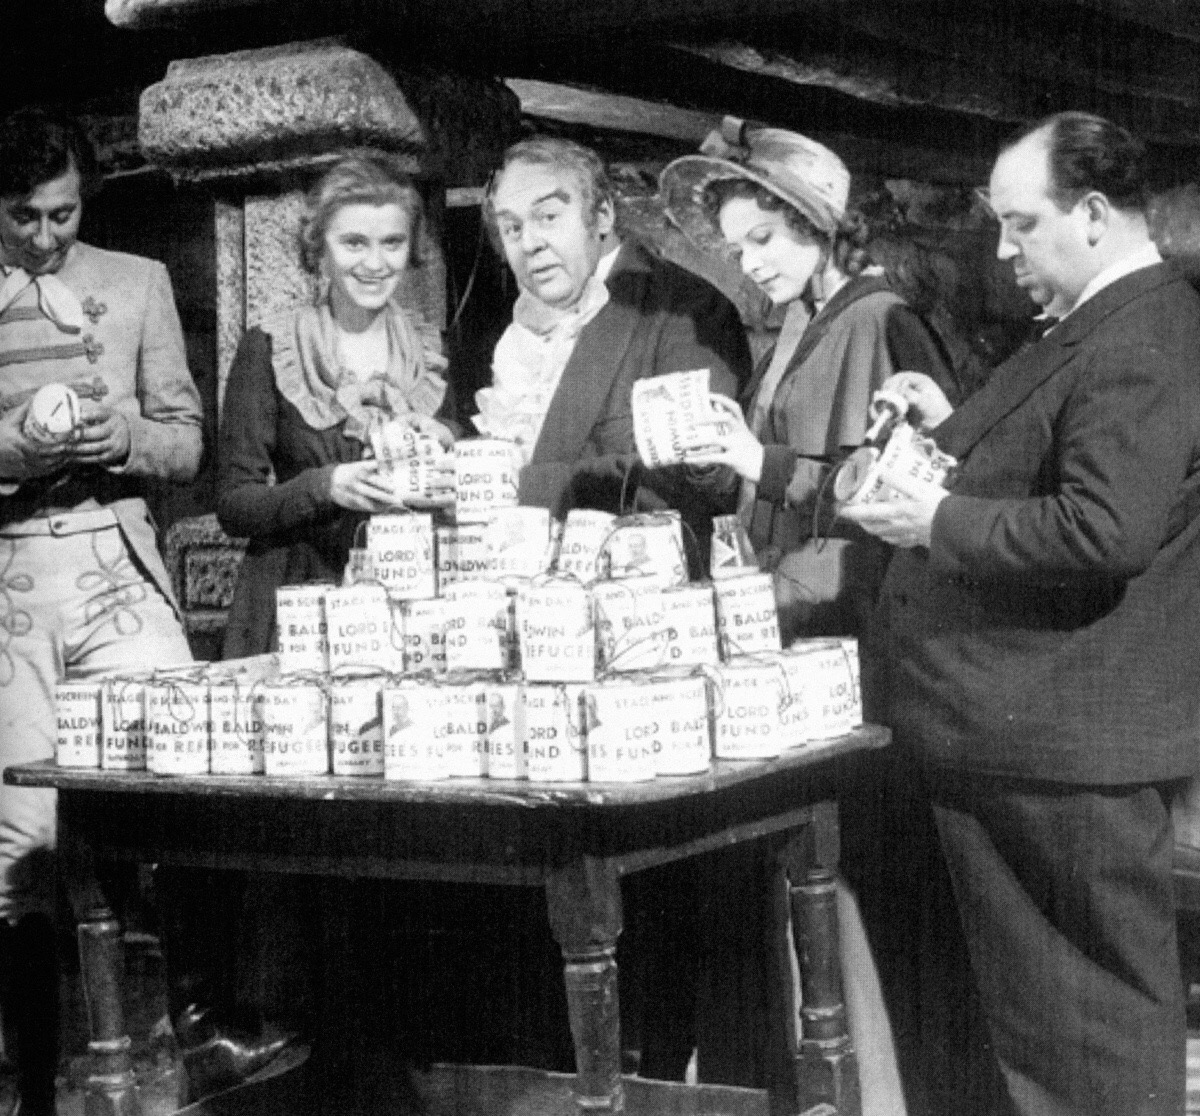 Robert Newton, Marie Ney, Charles Laughton, Maureen O'Hara and Alfred Hitchcock pose for Lord Baldwin's Fund for Refugees on the set of Jamaica Inn